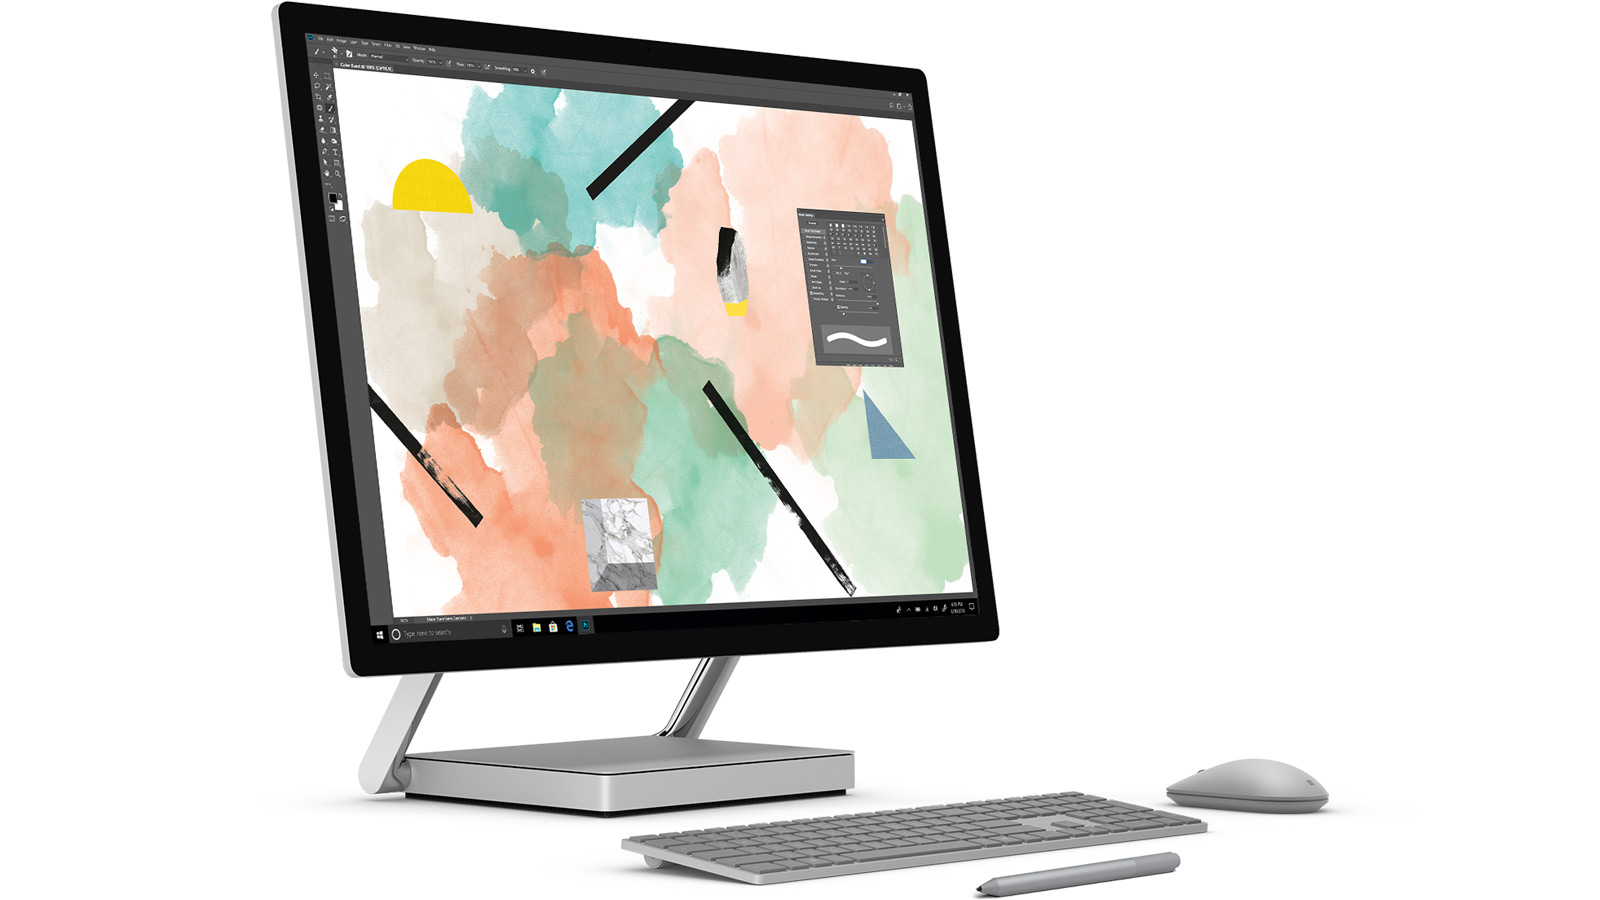 Surface Studio med tastatur, mus og Surface-penn